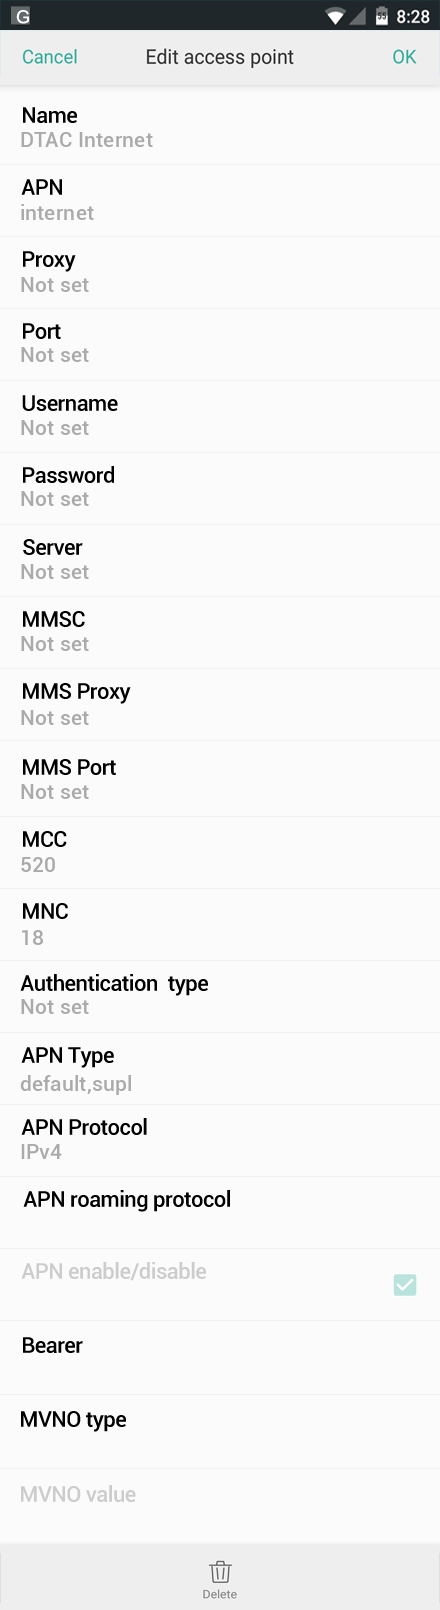 DTAC Internet APN settings for Oppo screenshot